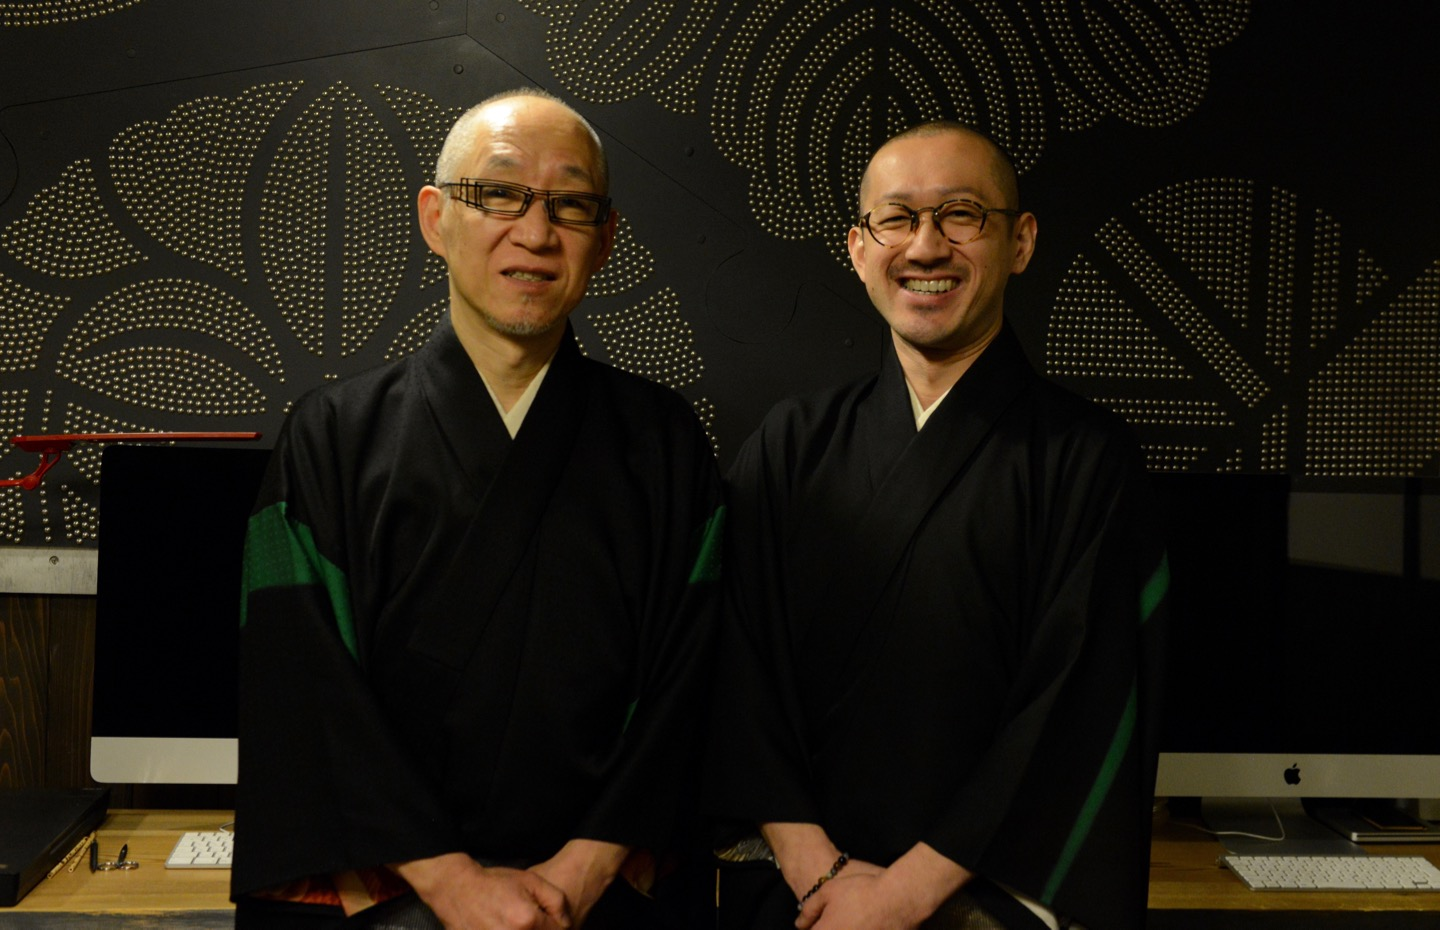 The Japanese Family Crest Artisans, Shoryu and Yoji Hatoba at their design studio in Ueno, Tokyo